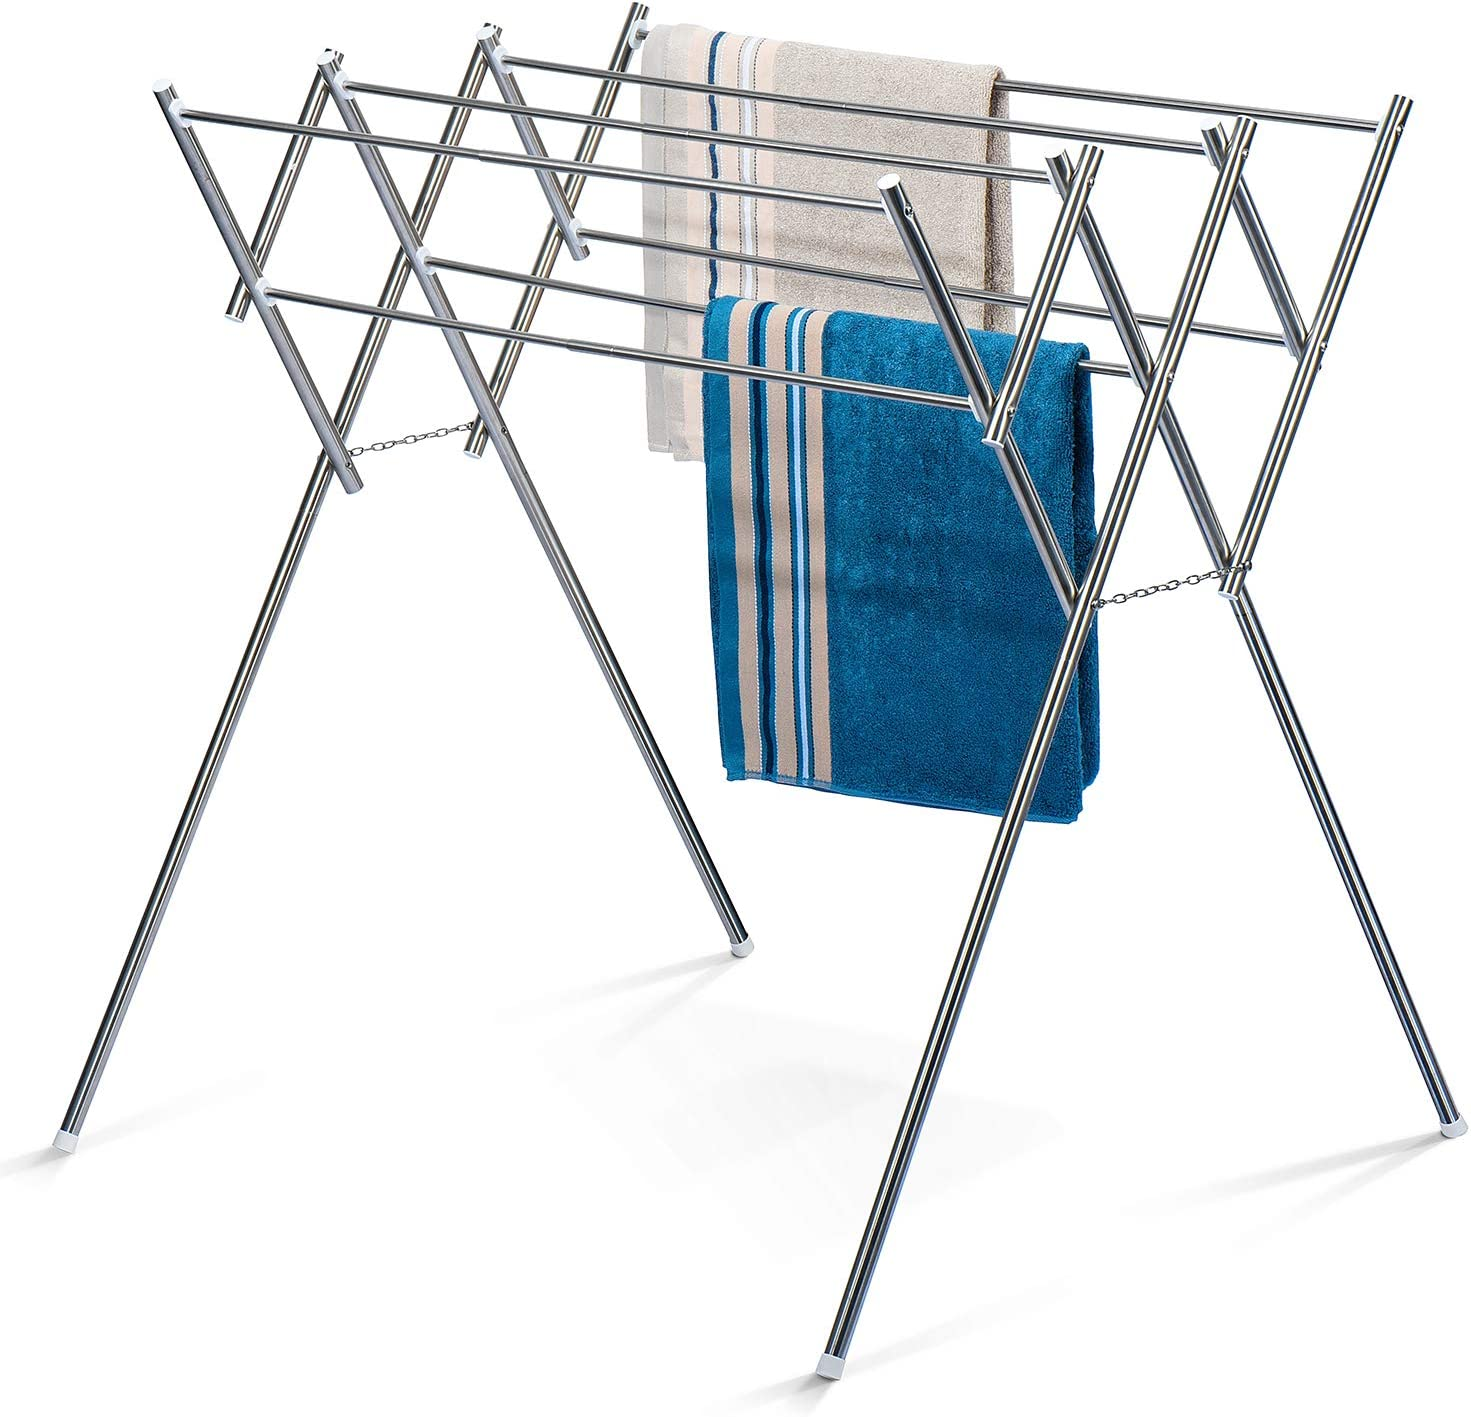 HOUSE DAY Drying Rack Towel Rack Stainless Steel Foldable Towel Clothes Drying Rack Folding Drying Rack Laundry Drying Rack